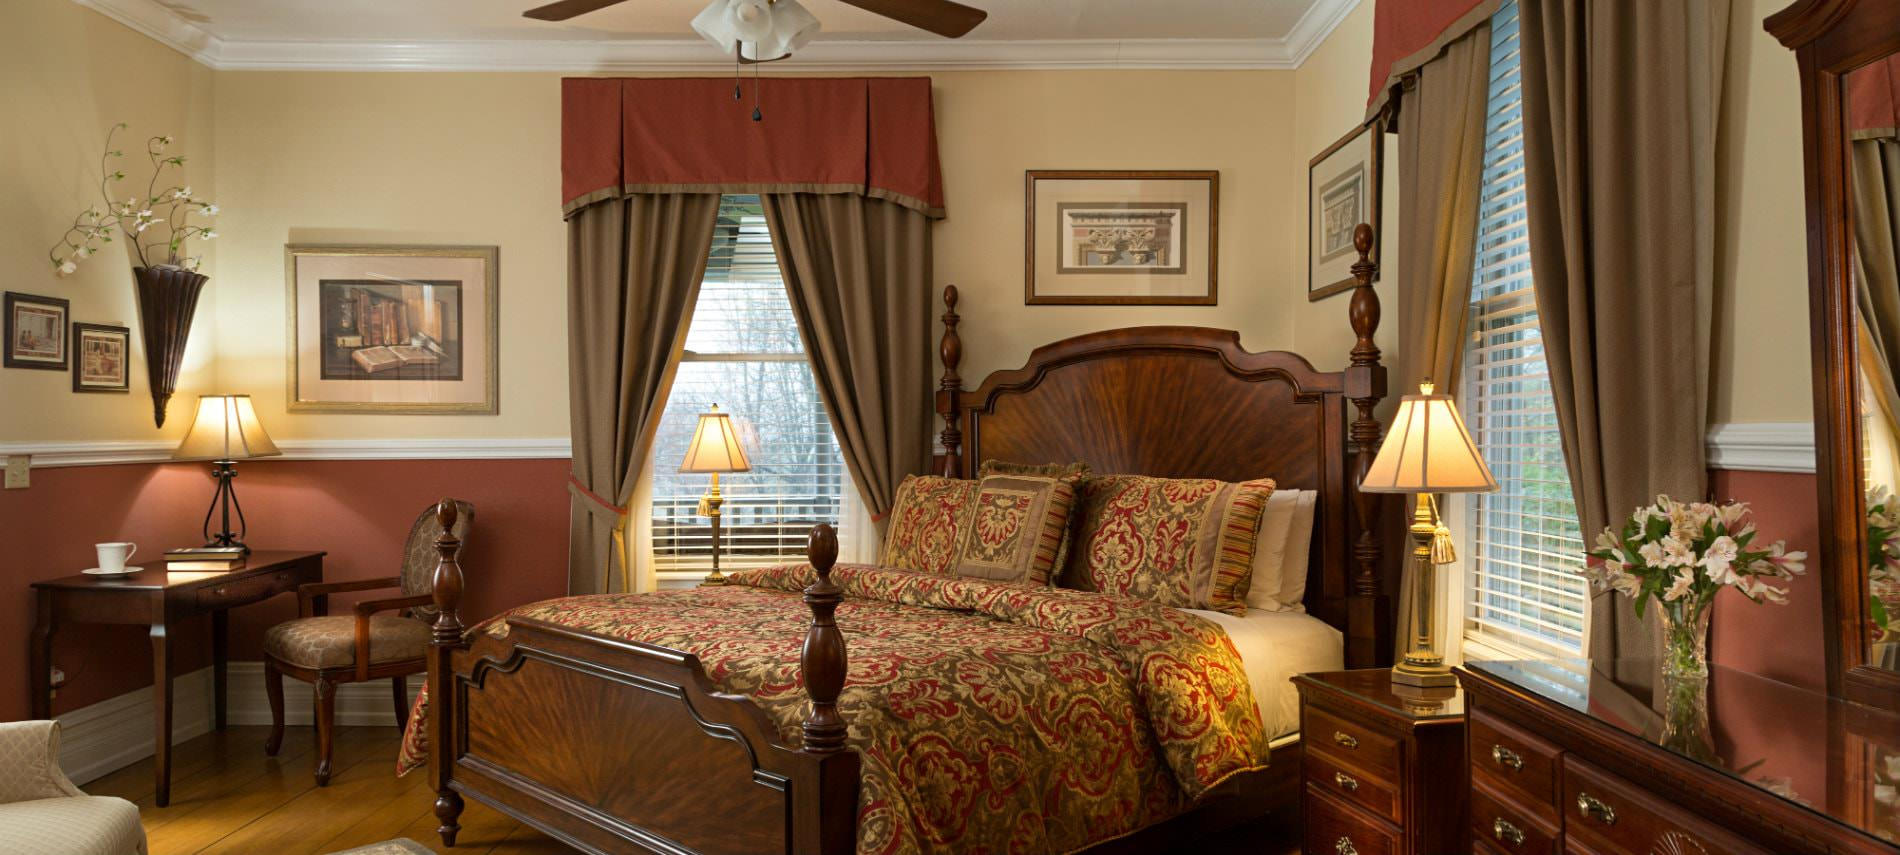 Creamy beige and rust red room with wood floors, elegant four poster bed, desk and chair and natural light